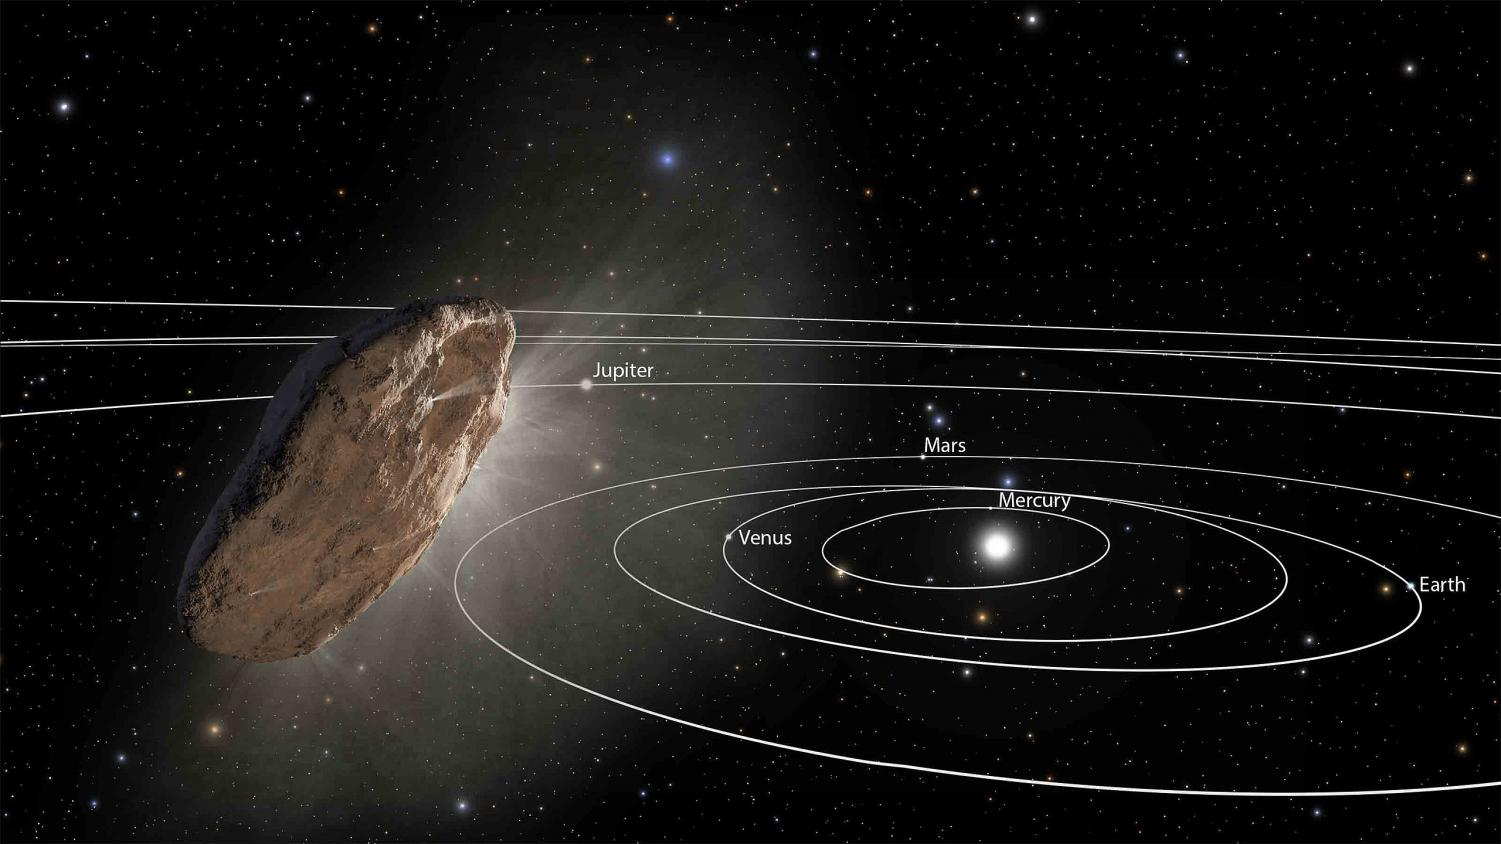 """Interstellar Object 'Oumuamua Exits the Solar System (Artist Concept) (Animation)."" Wikipedia , 2017, en.wikipedia.org/wiki/%CA%BBOumuamua."